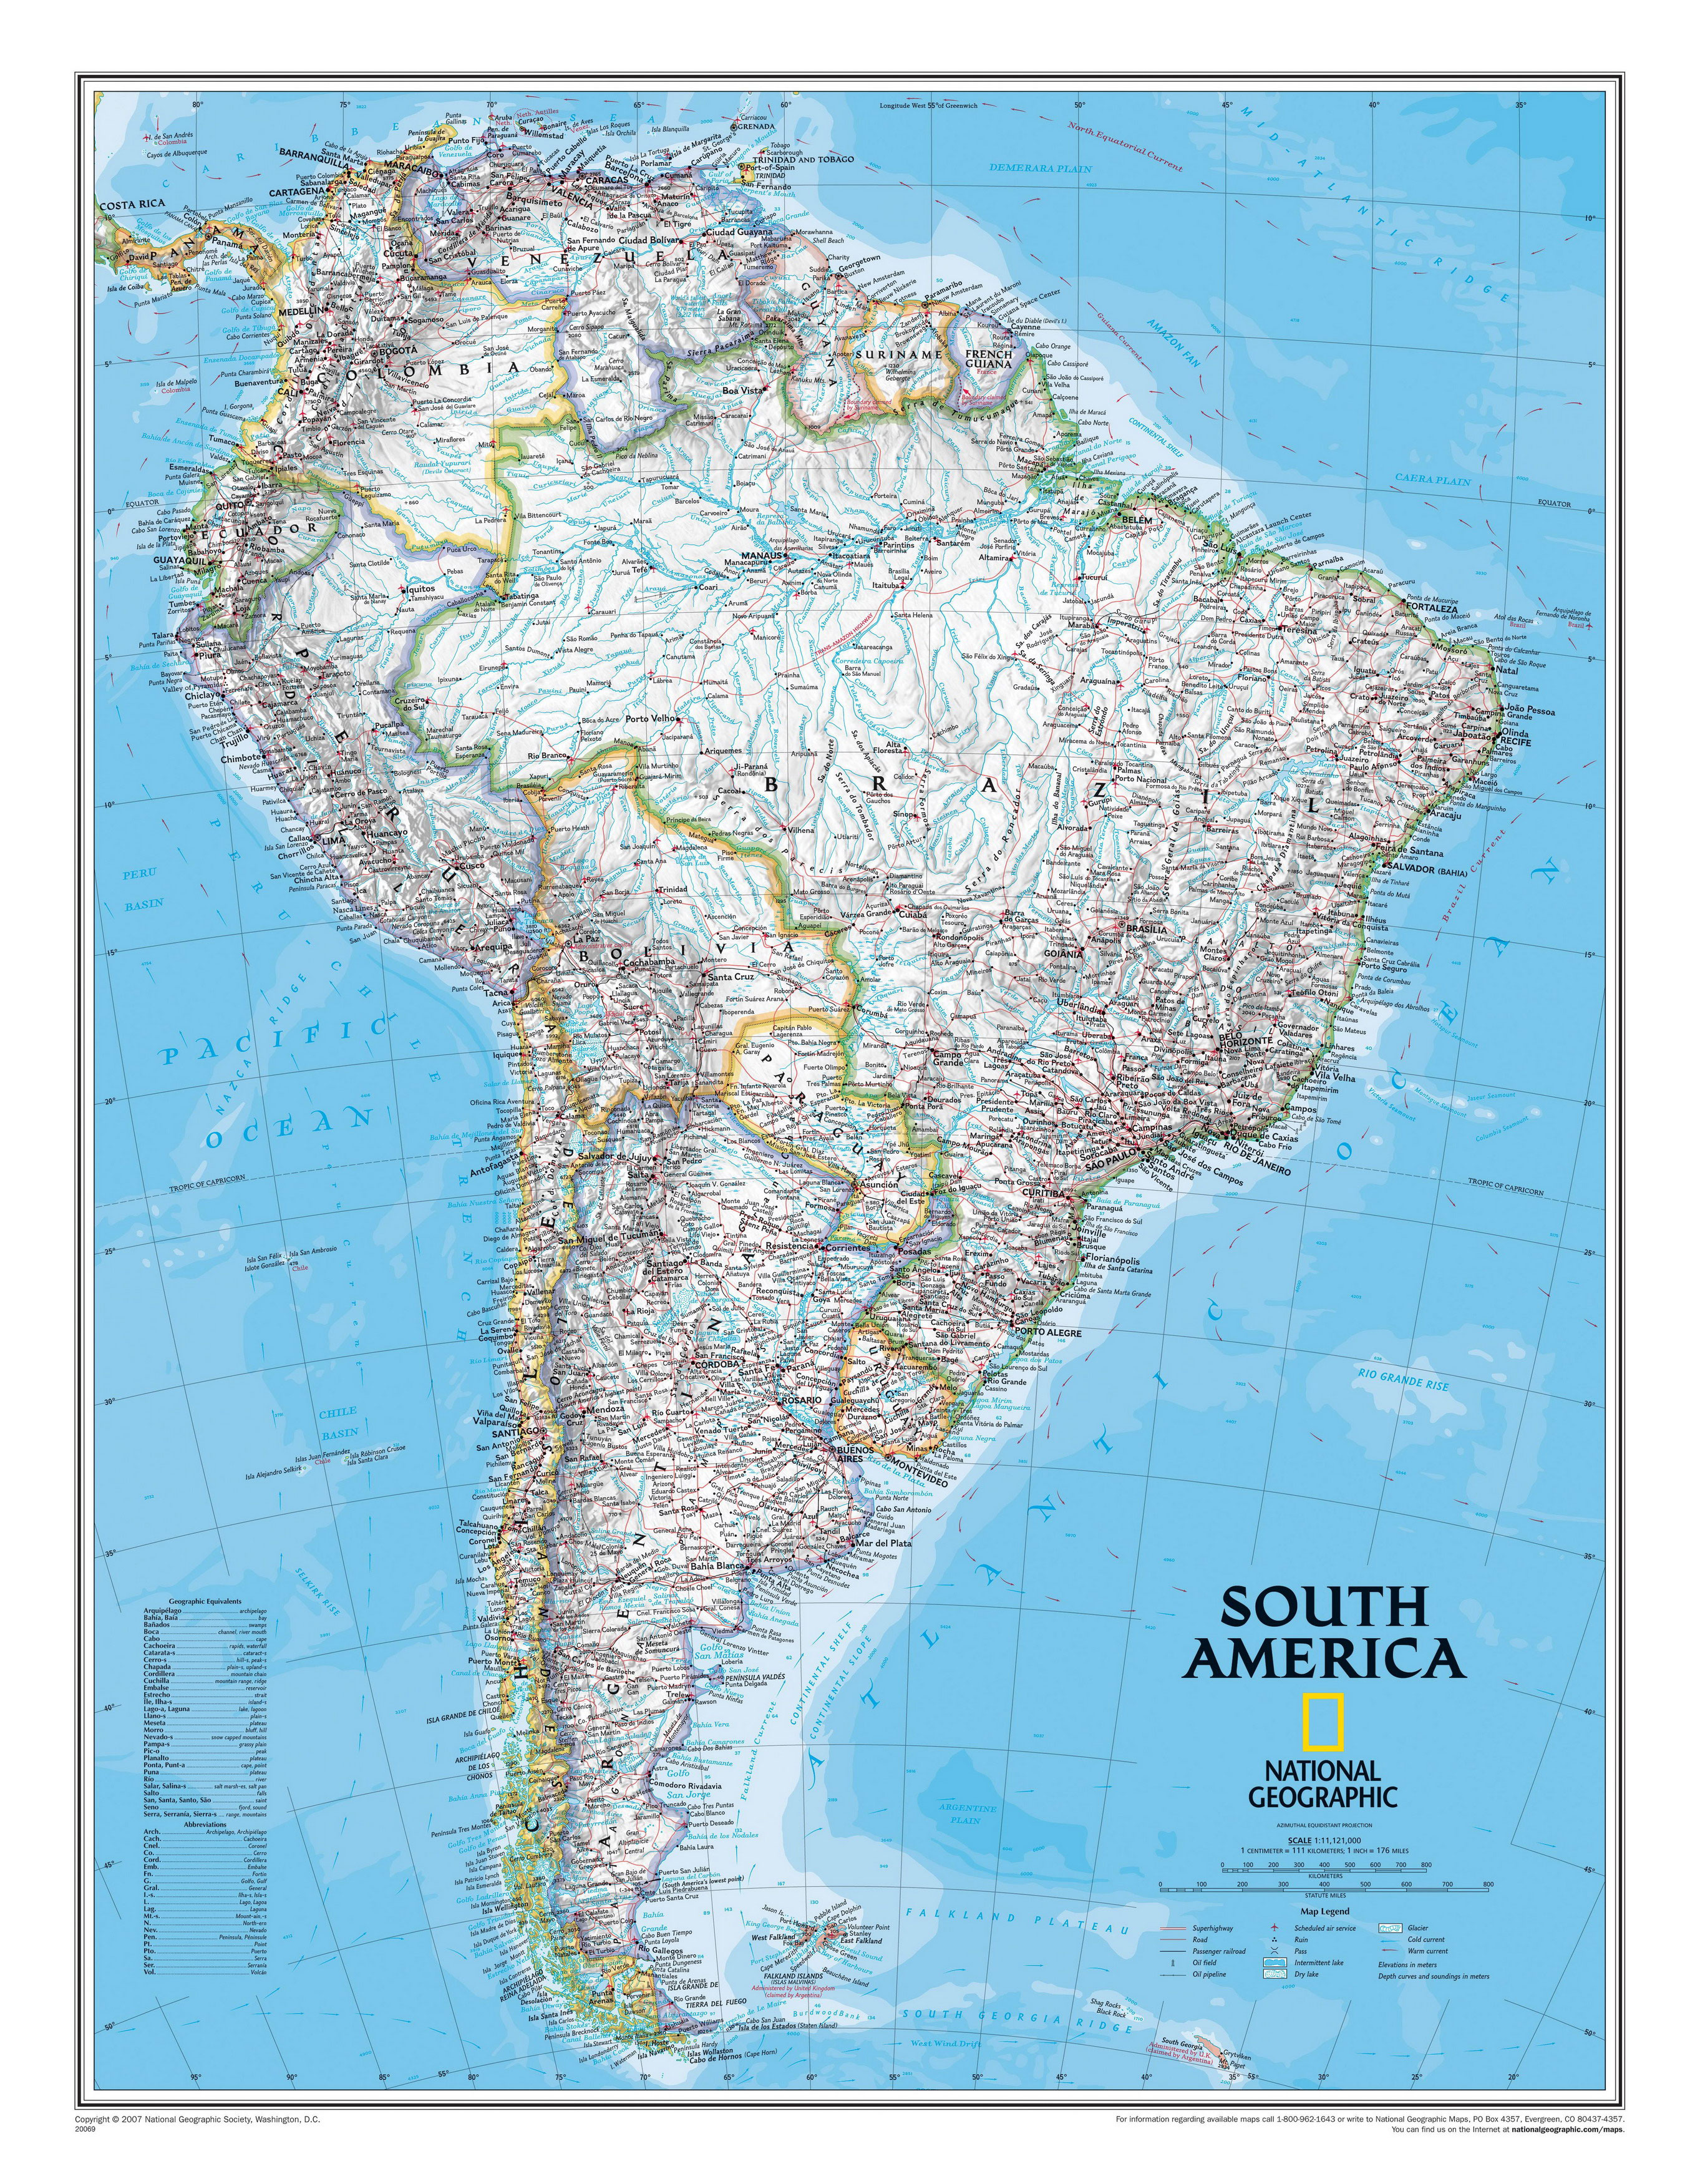 Map of countries of South America South America